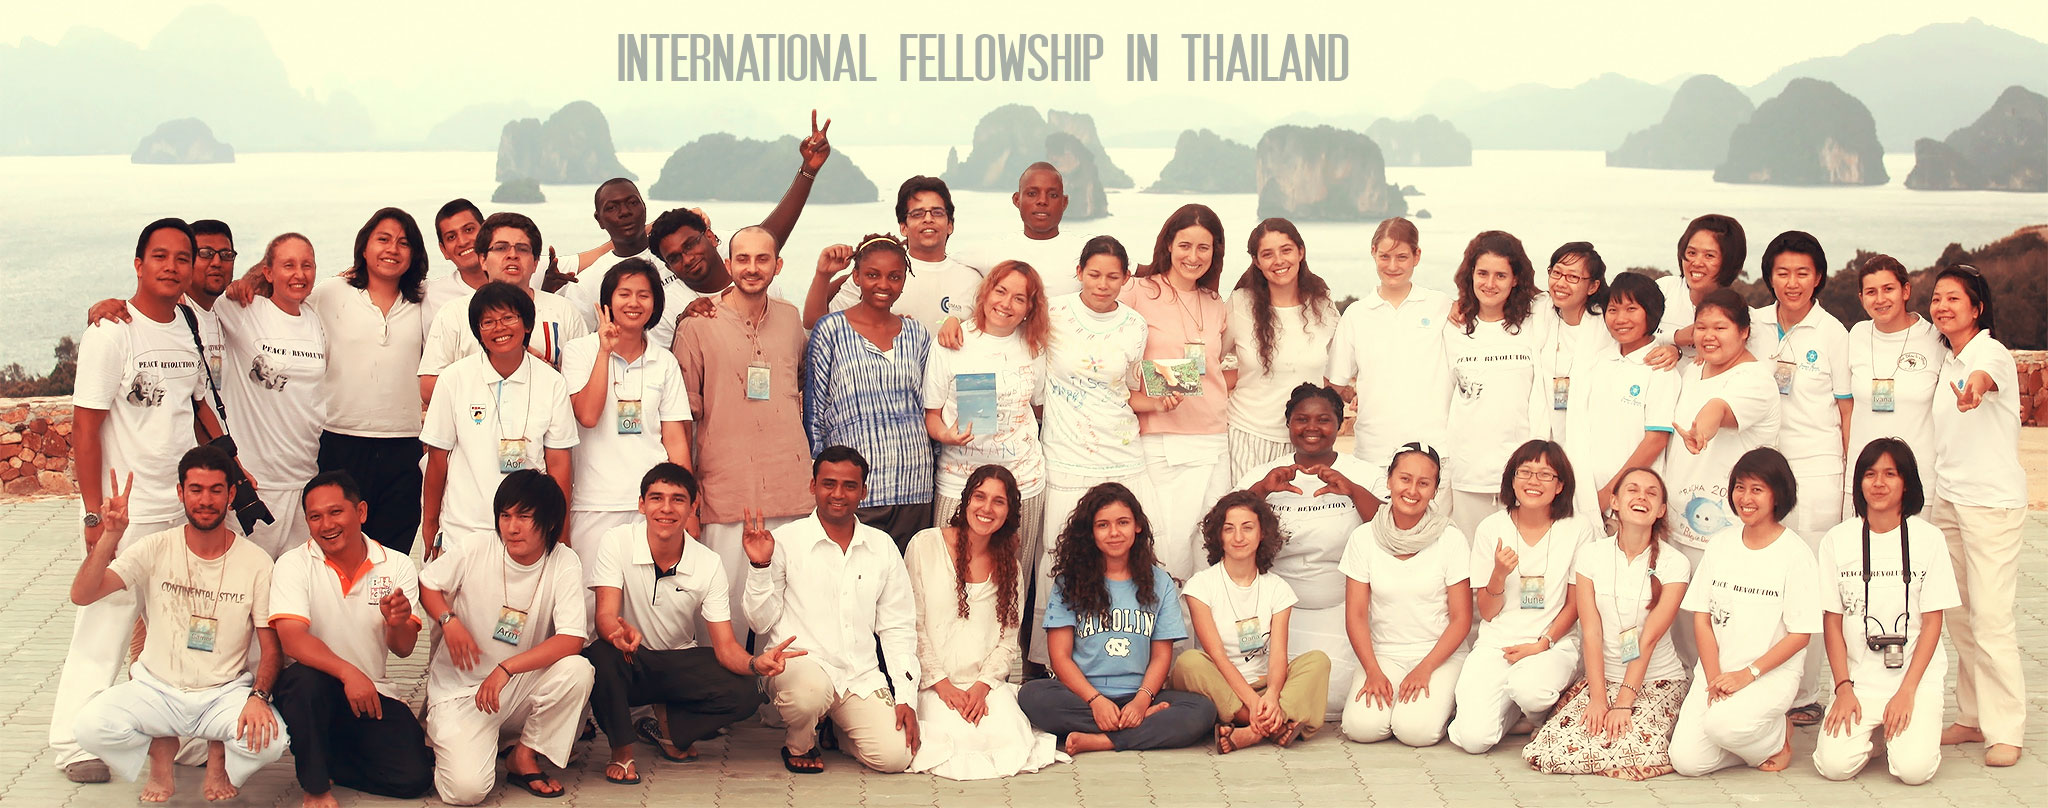 Peace Revolution International Youth Fellowship in Thailand 2016